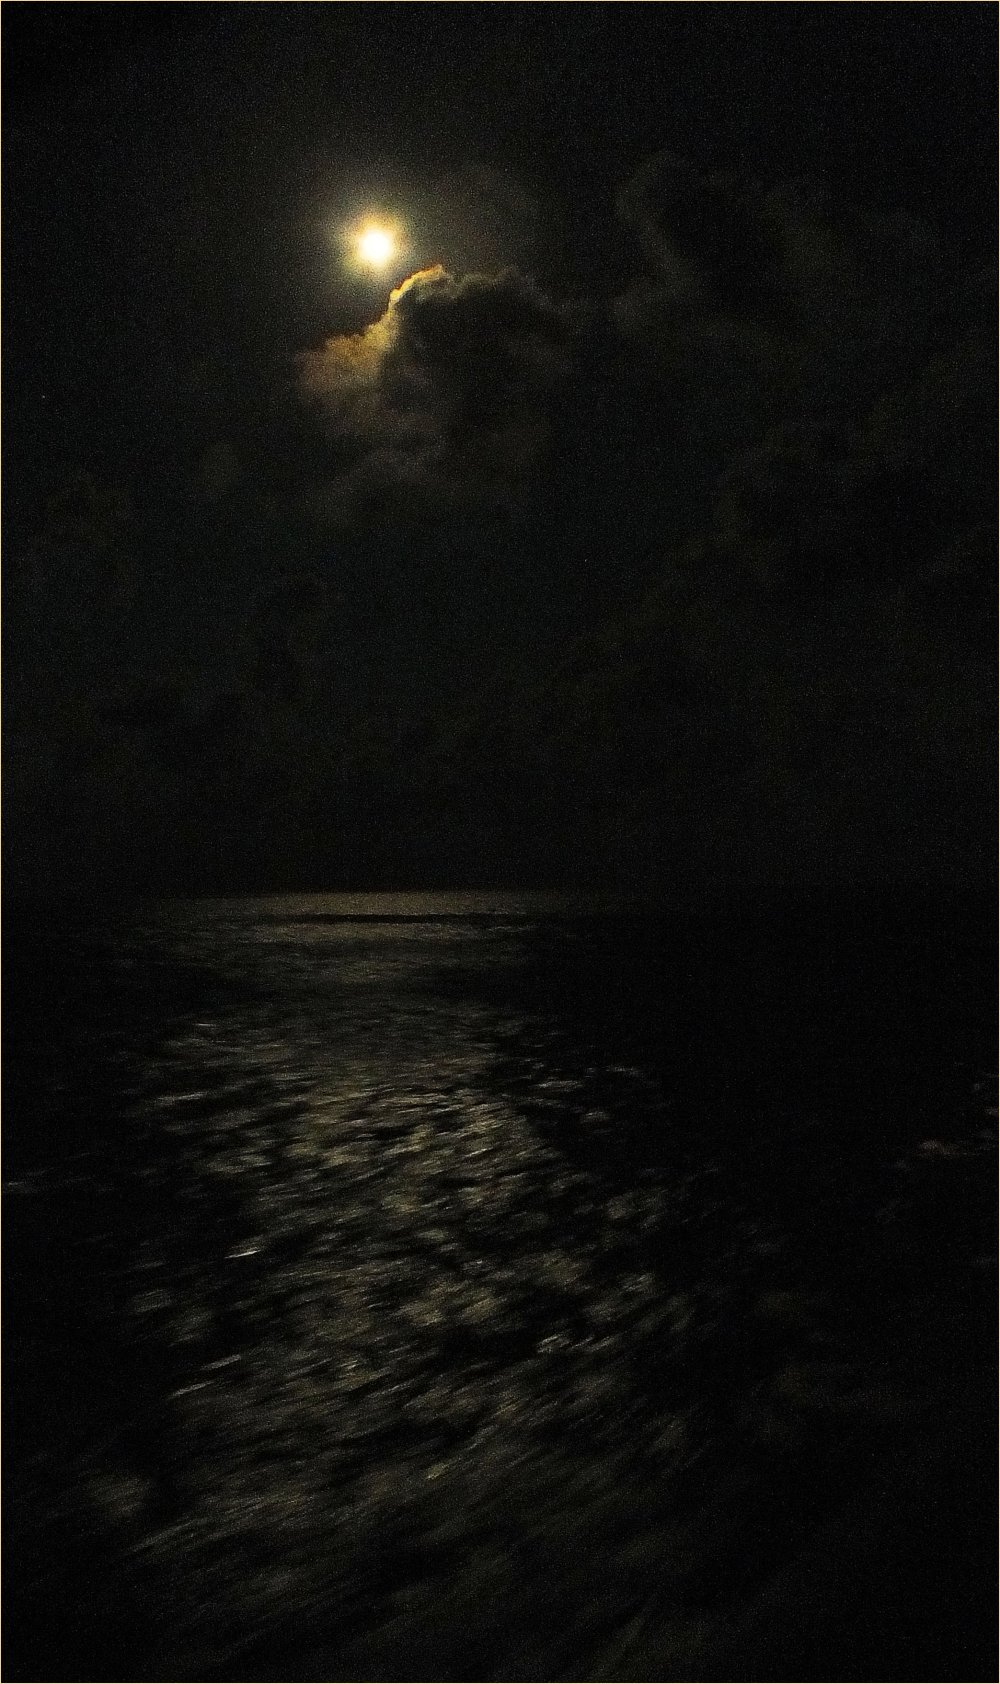 Moon over the ocean...